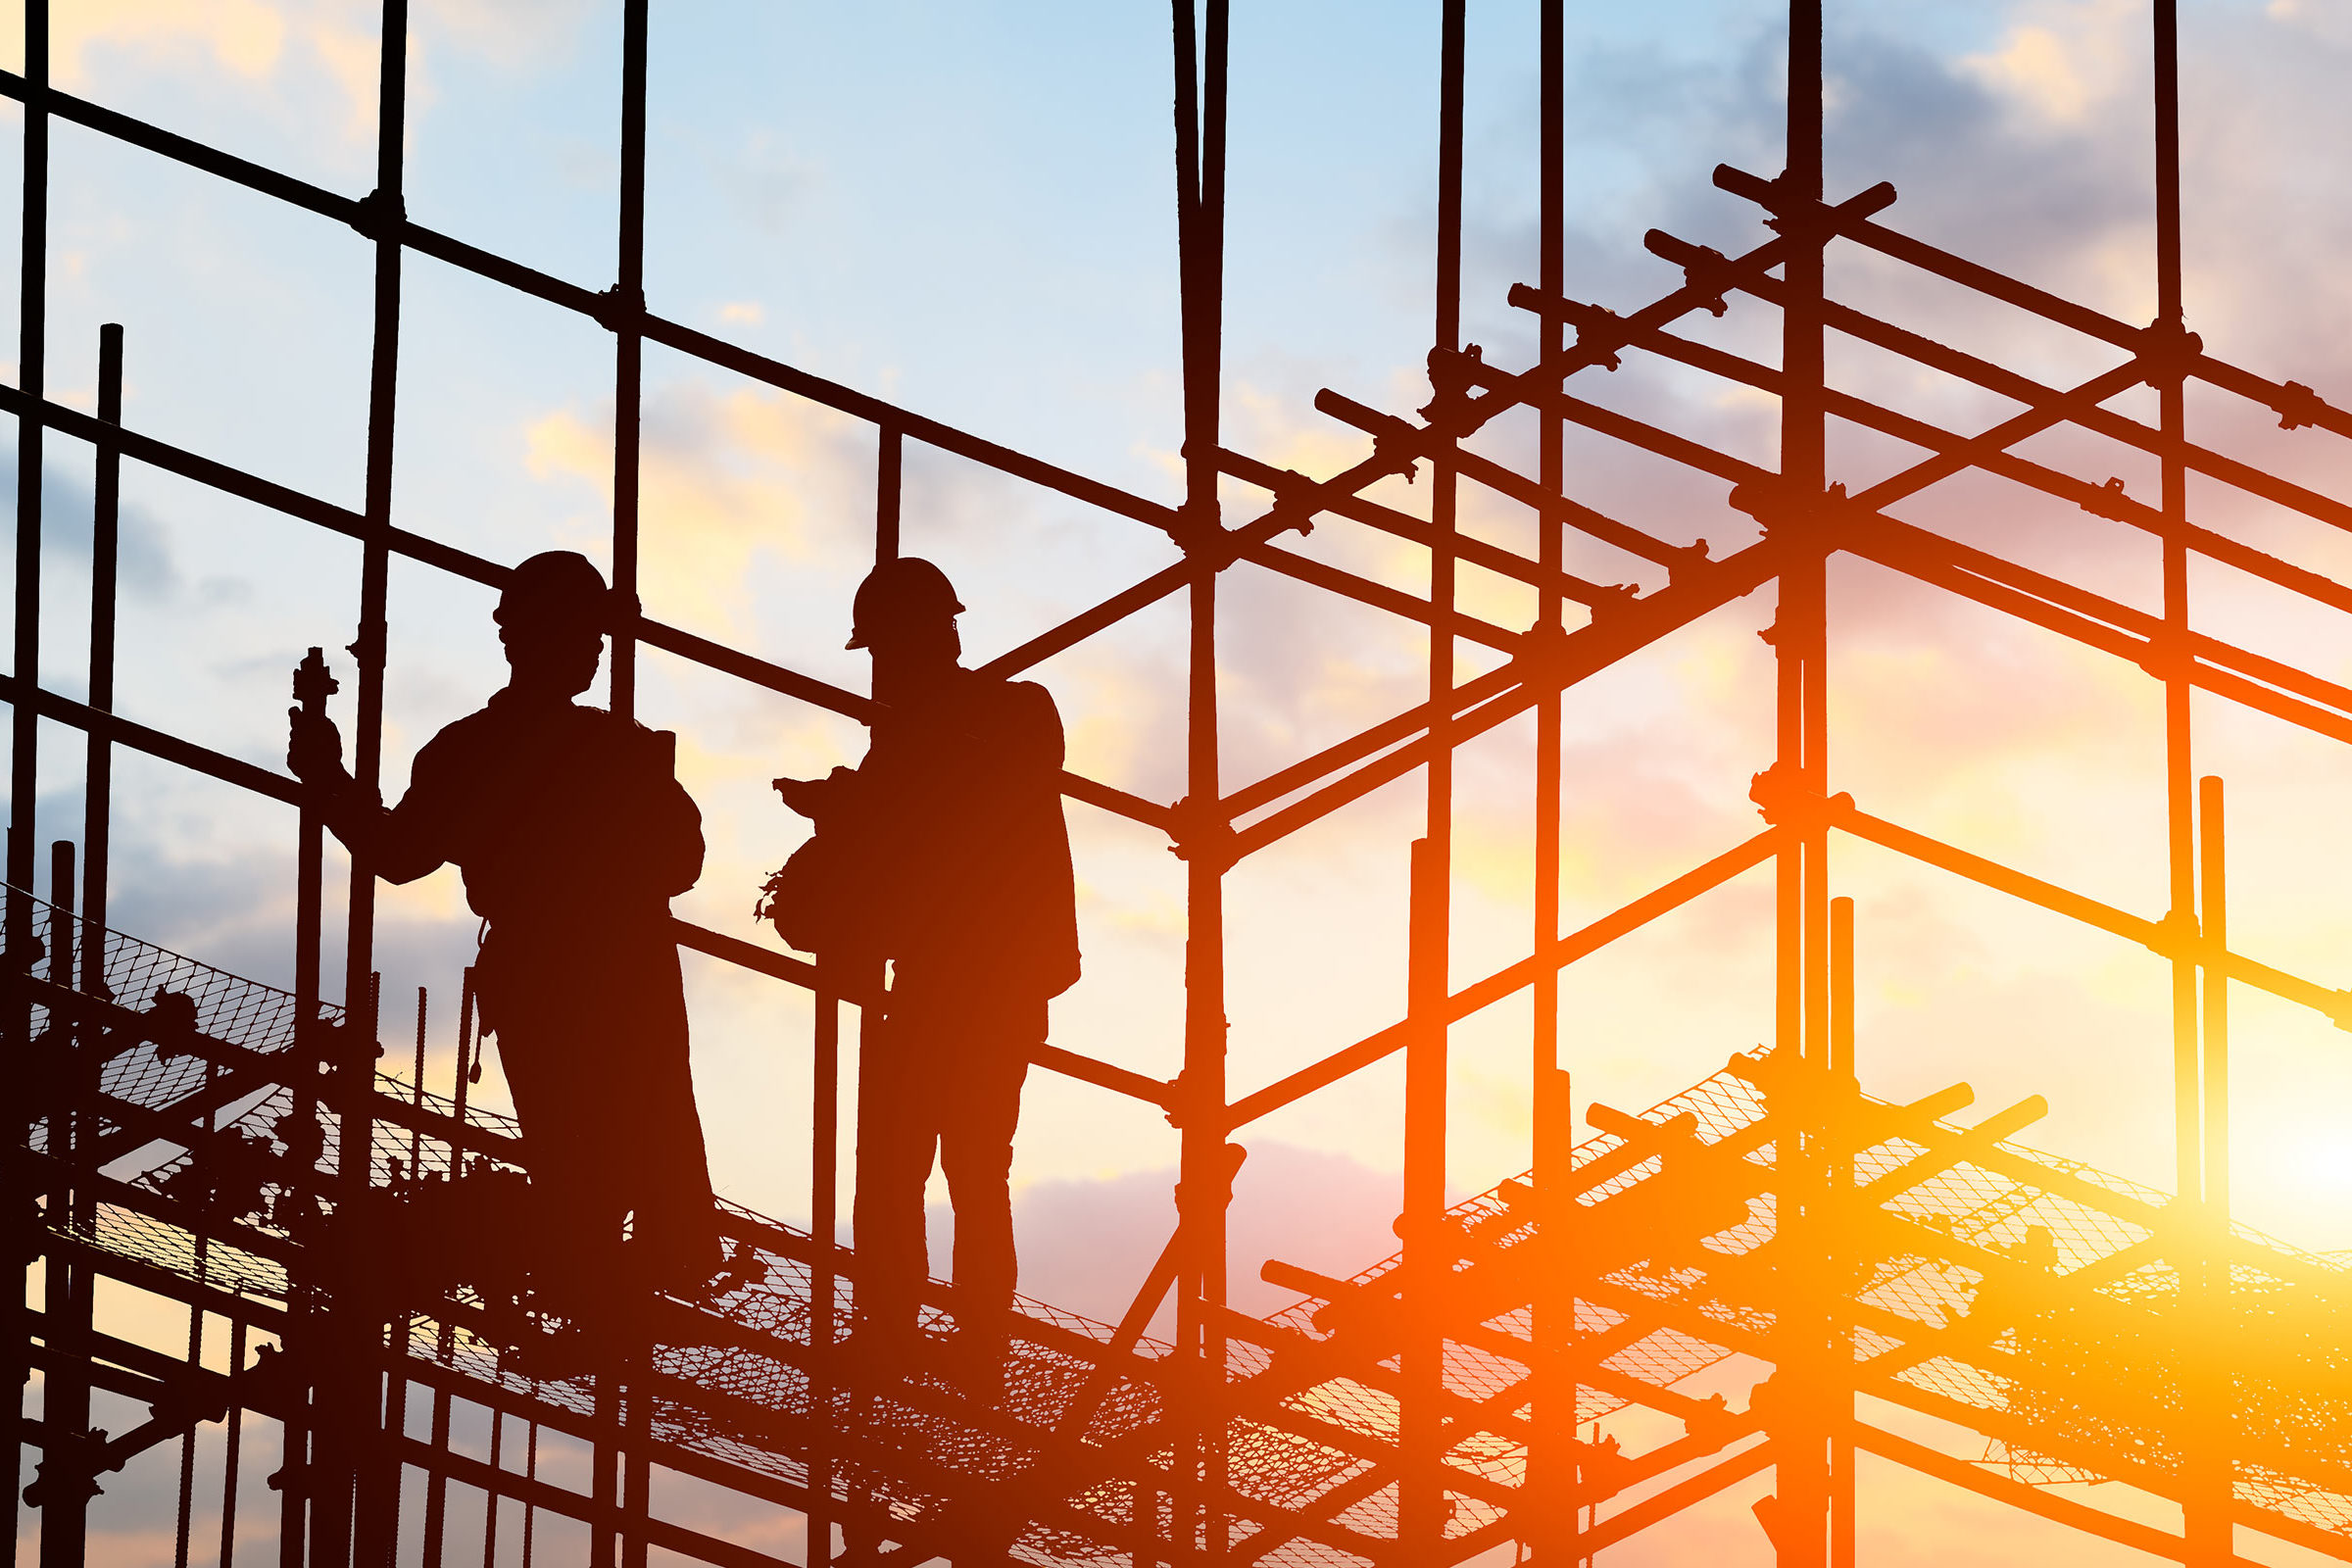 Two construction workers standing on scaffolding at sunrise